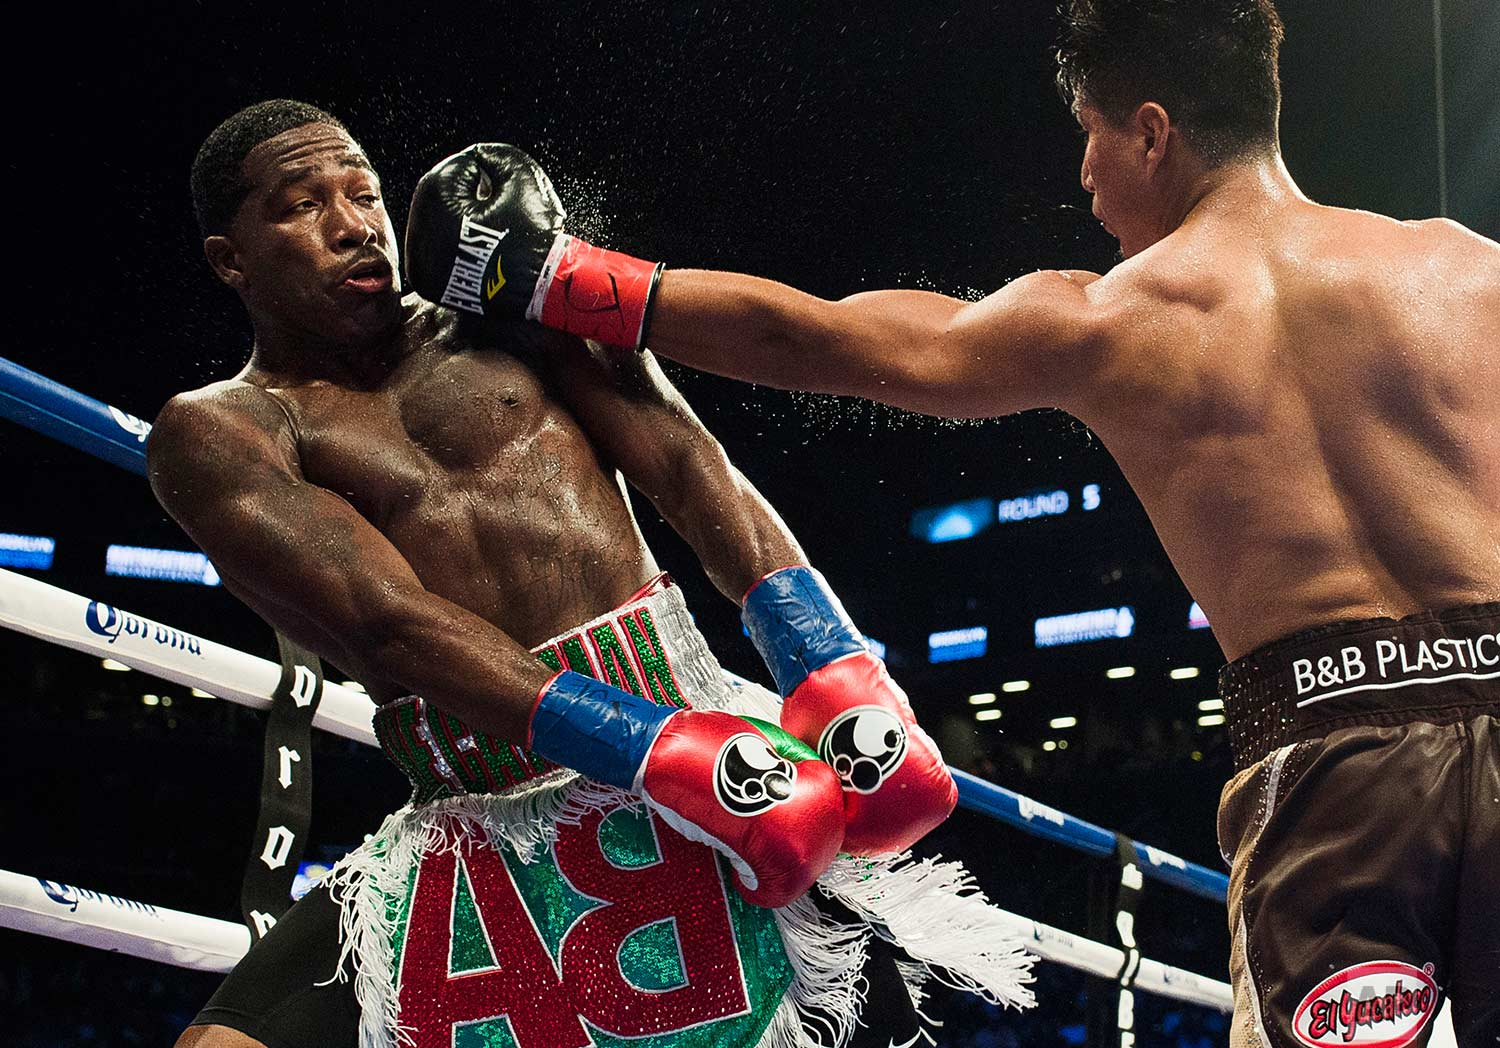 Mikey Garcia, right, hits Adrien Broner, left, during a boxing bout at 140 pounds, Saturday, July 29, 2017, in New York. (AP Photo/Andres Kudacki)